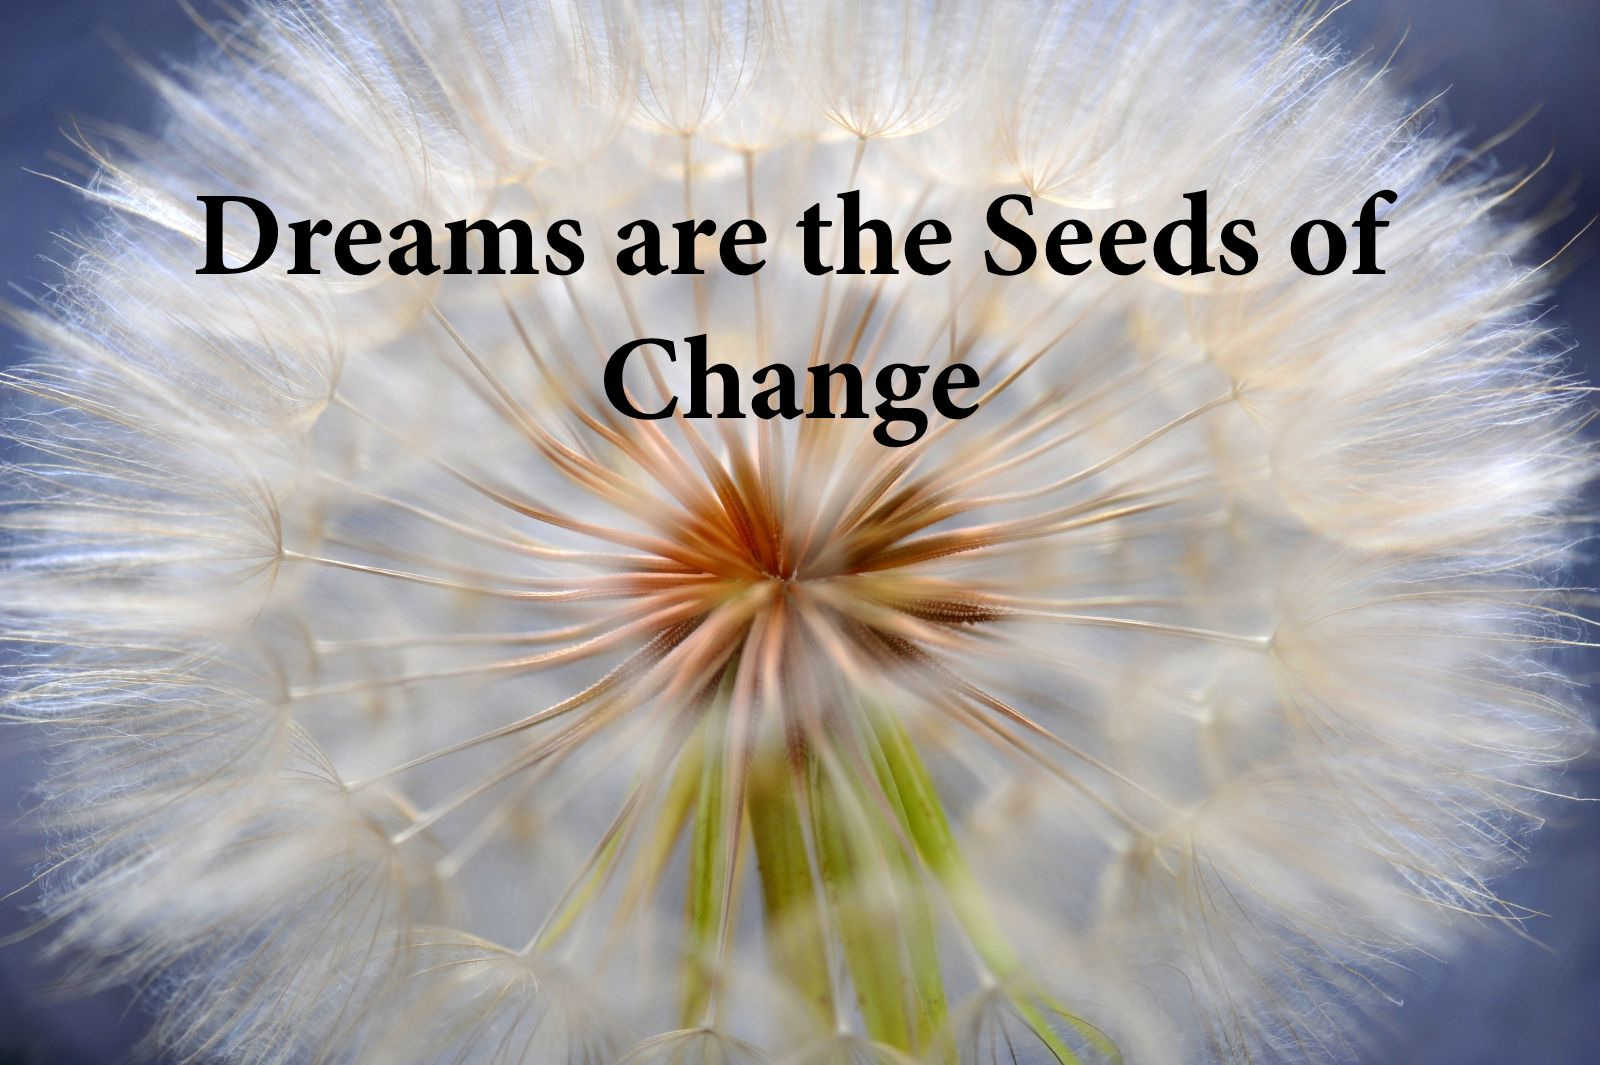 Dreams are the Seeds of Change with Marcus